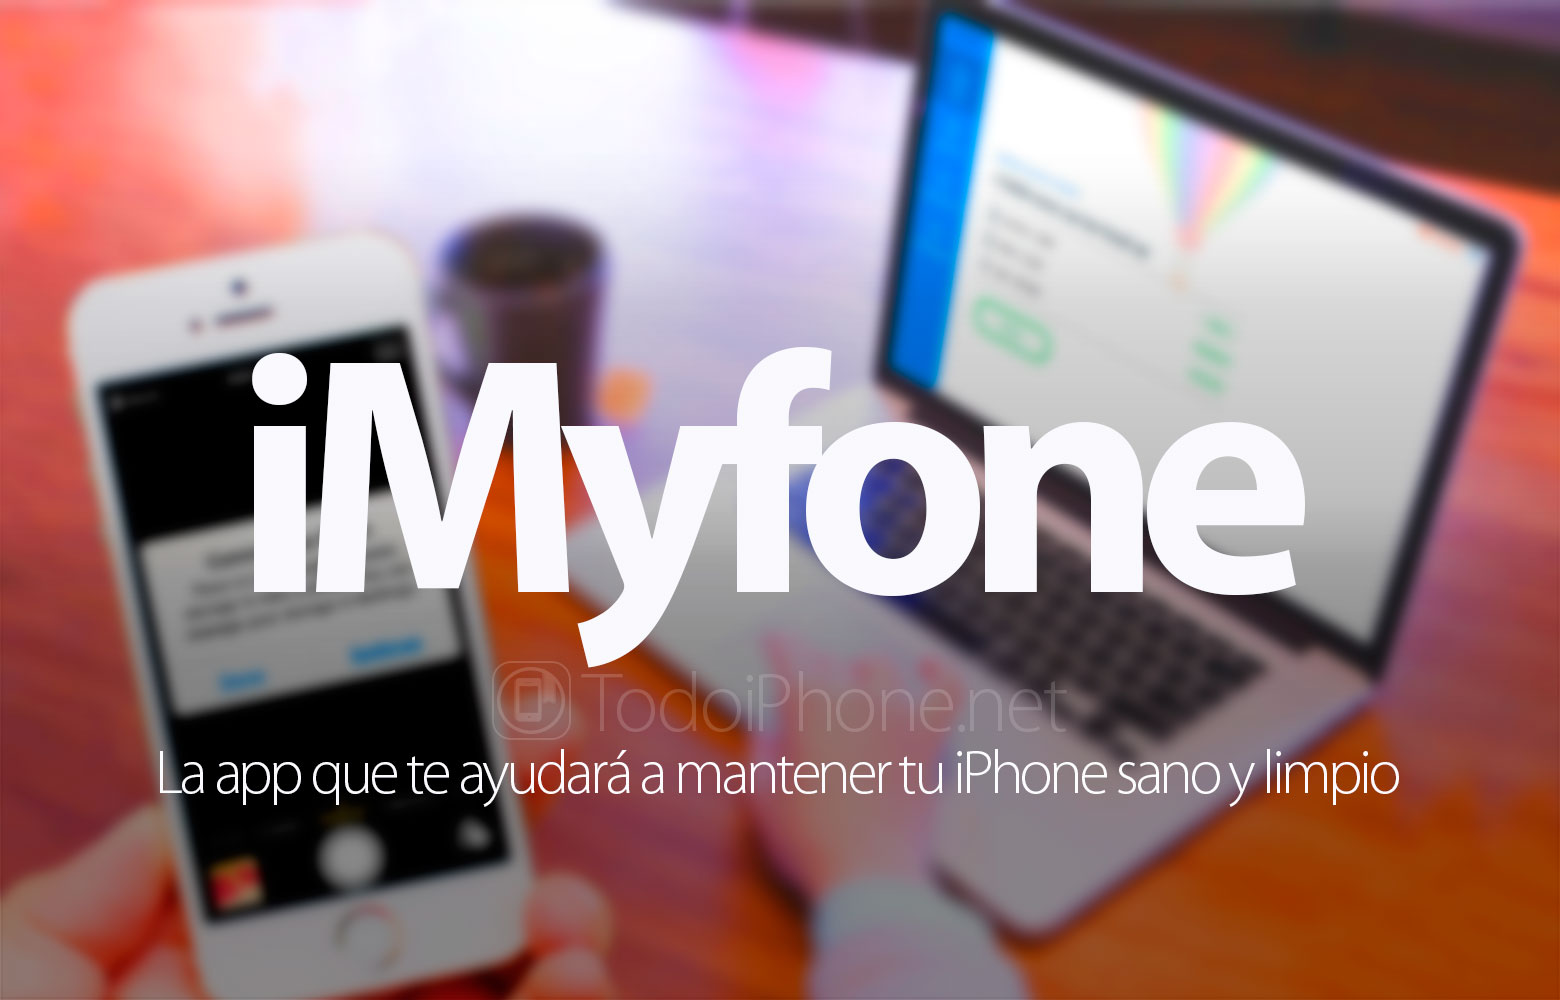 iMyfone, the app that will help you keep your iPhone healthy and clean 2